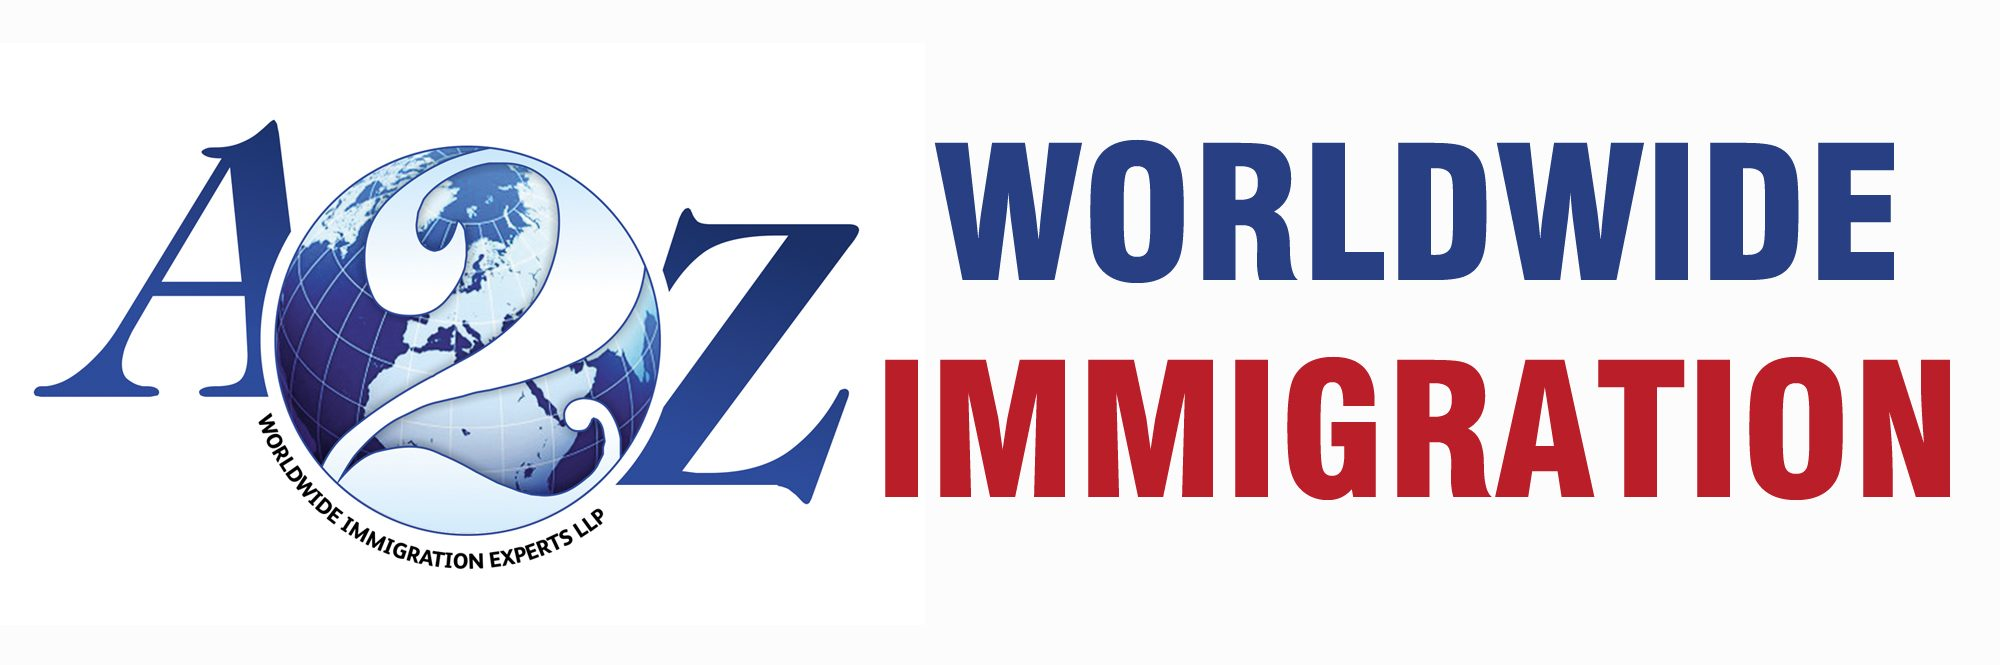 A2Z IMMIGRATION